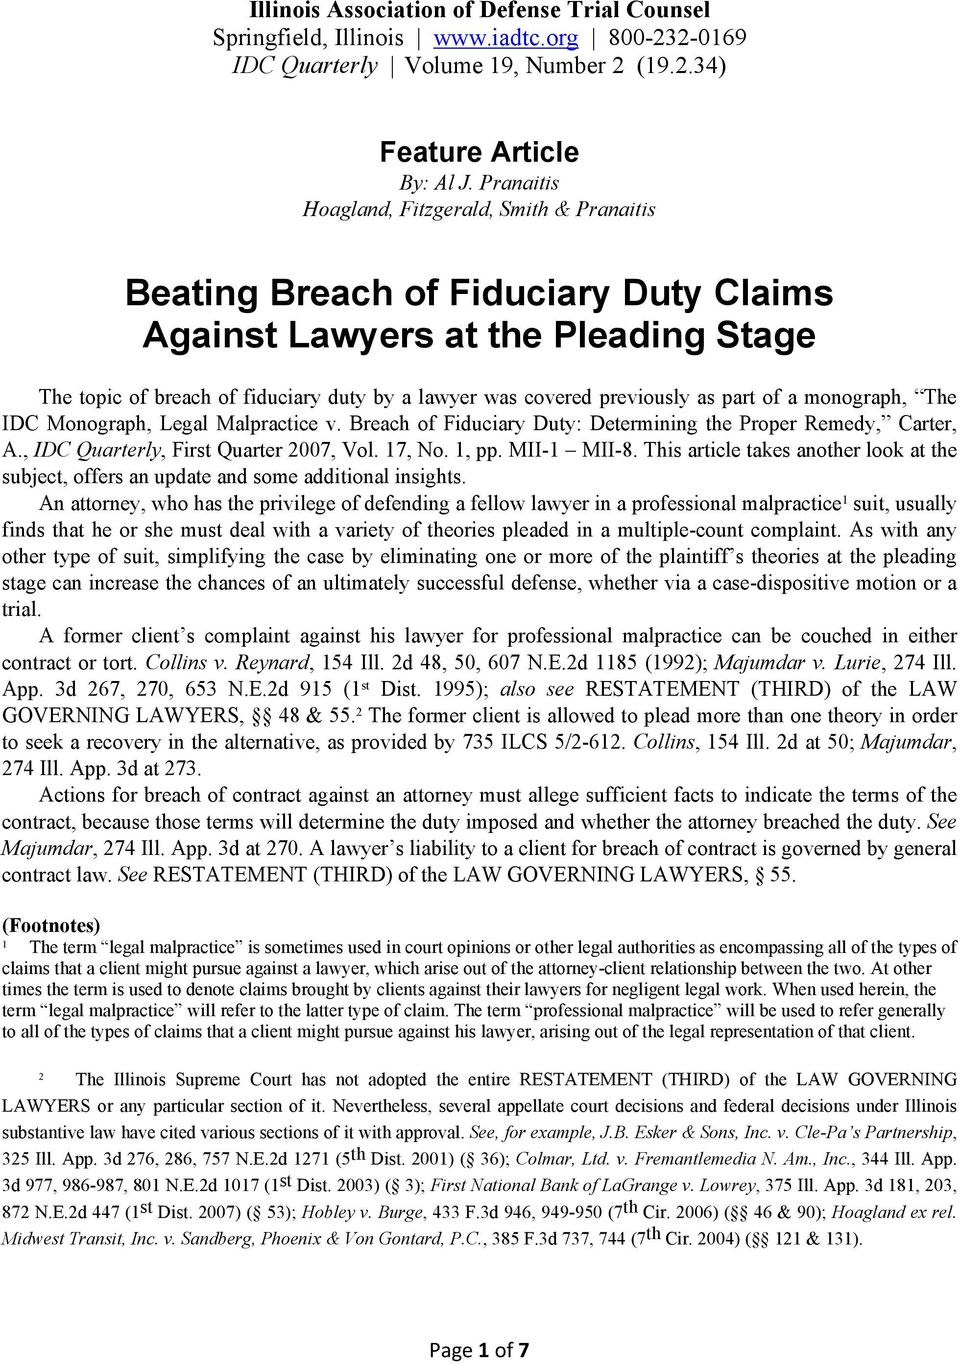 previously as part of a monograph, The IDC Monograph, Legal Malpractice v. Breach of Fiduciary Duty: Determining the Proper Remedy, Carter, A., IDC Quarterly, First Quarter 2007, Vol. 17, No. 1, pp.